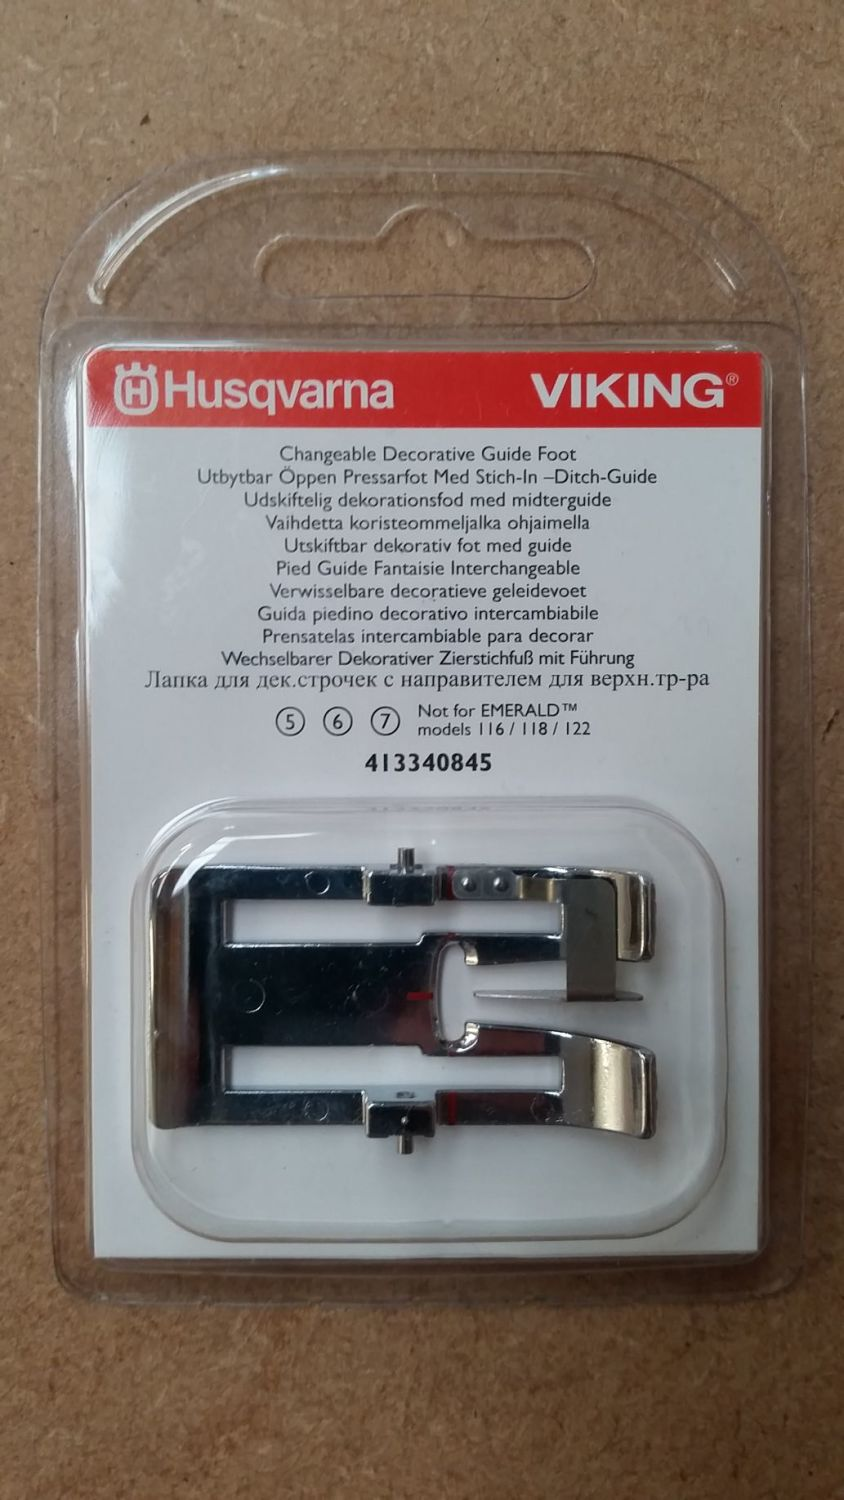 Husqvarna Viking Changeable Decorative Guide Foot 413340845